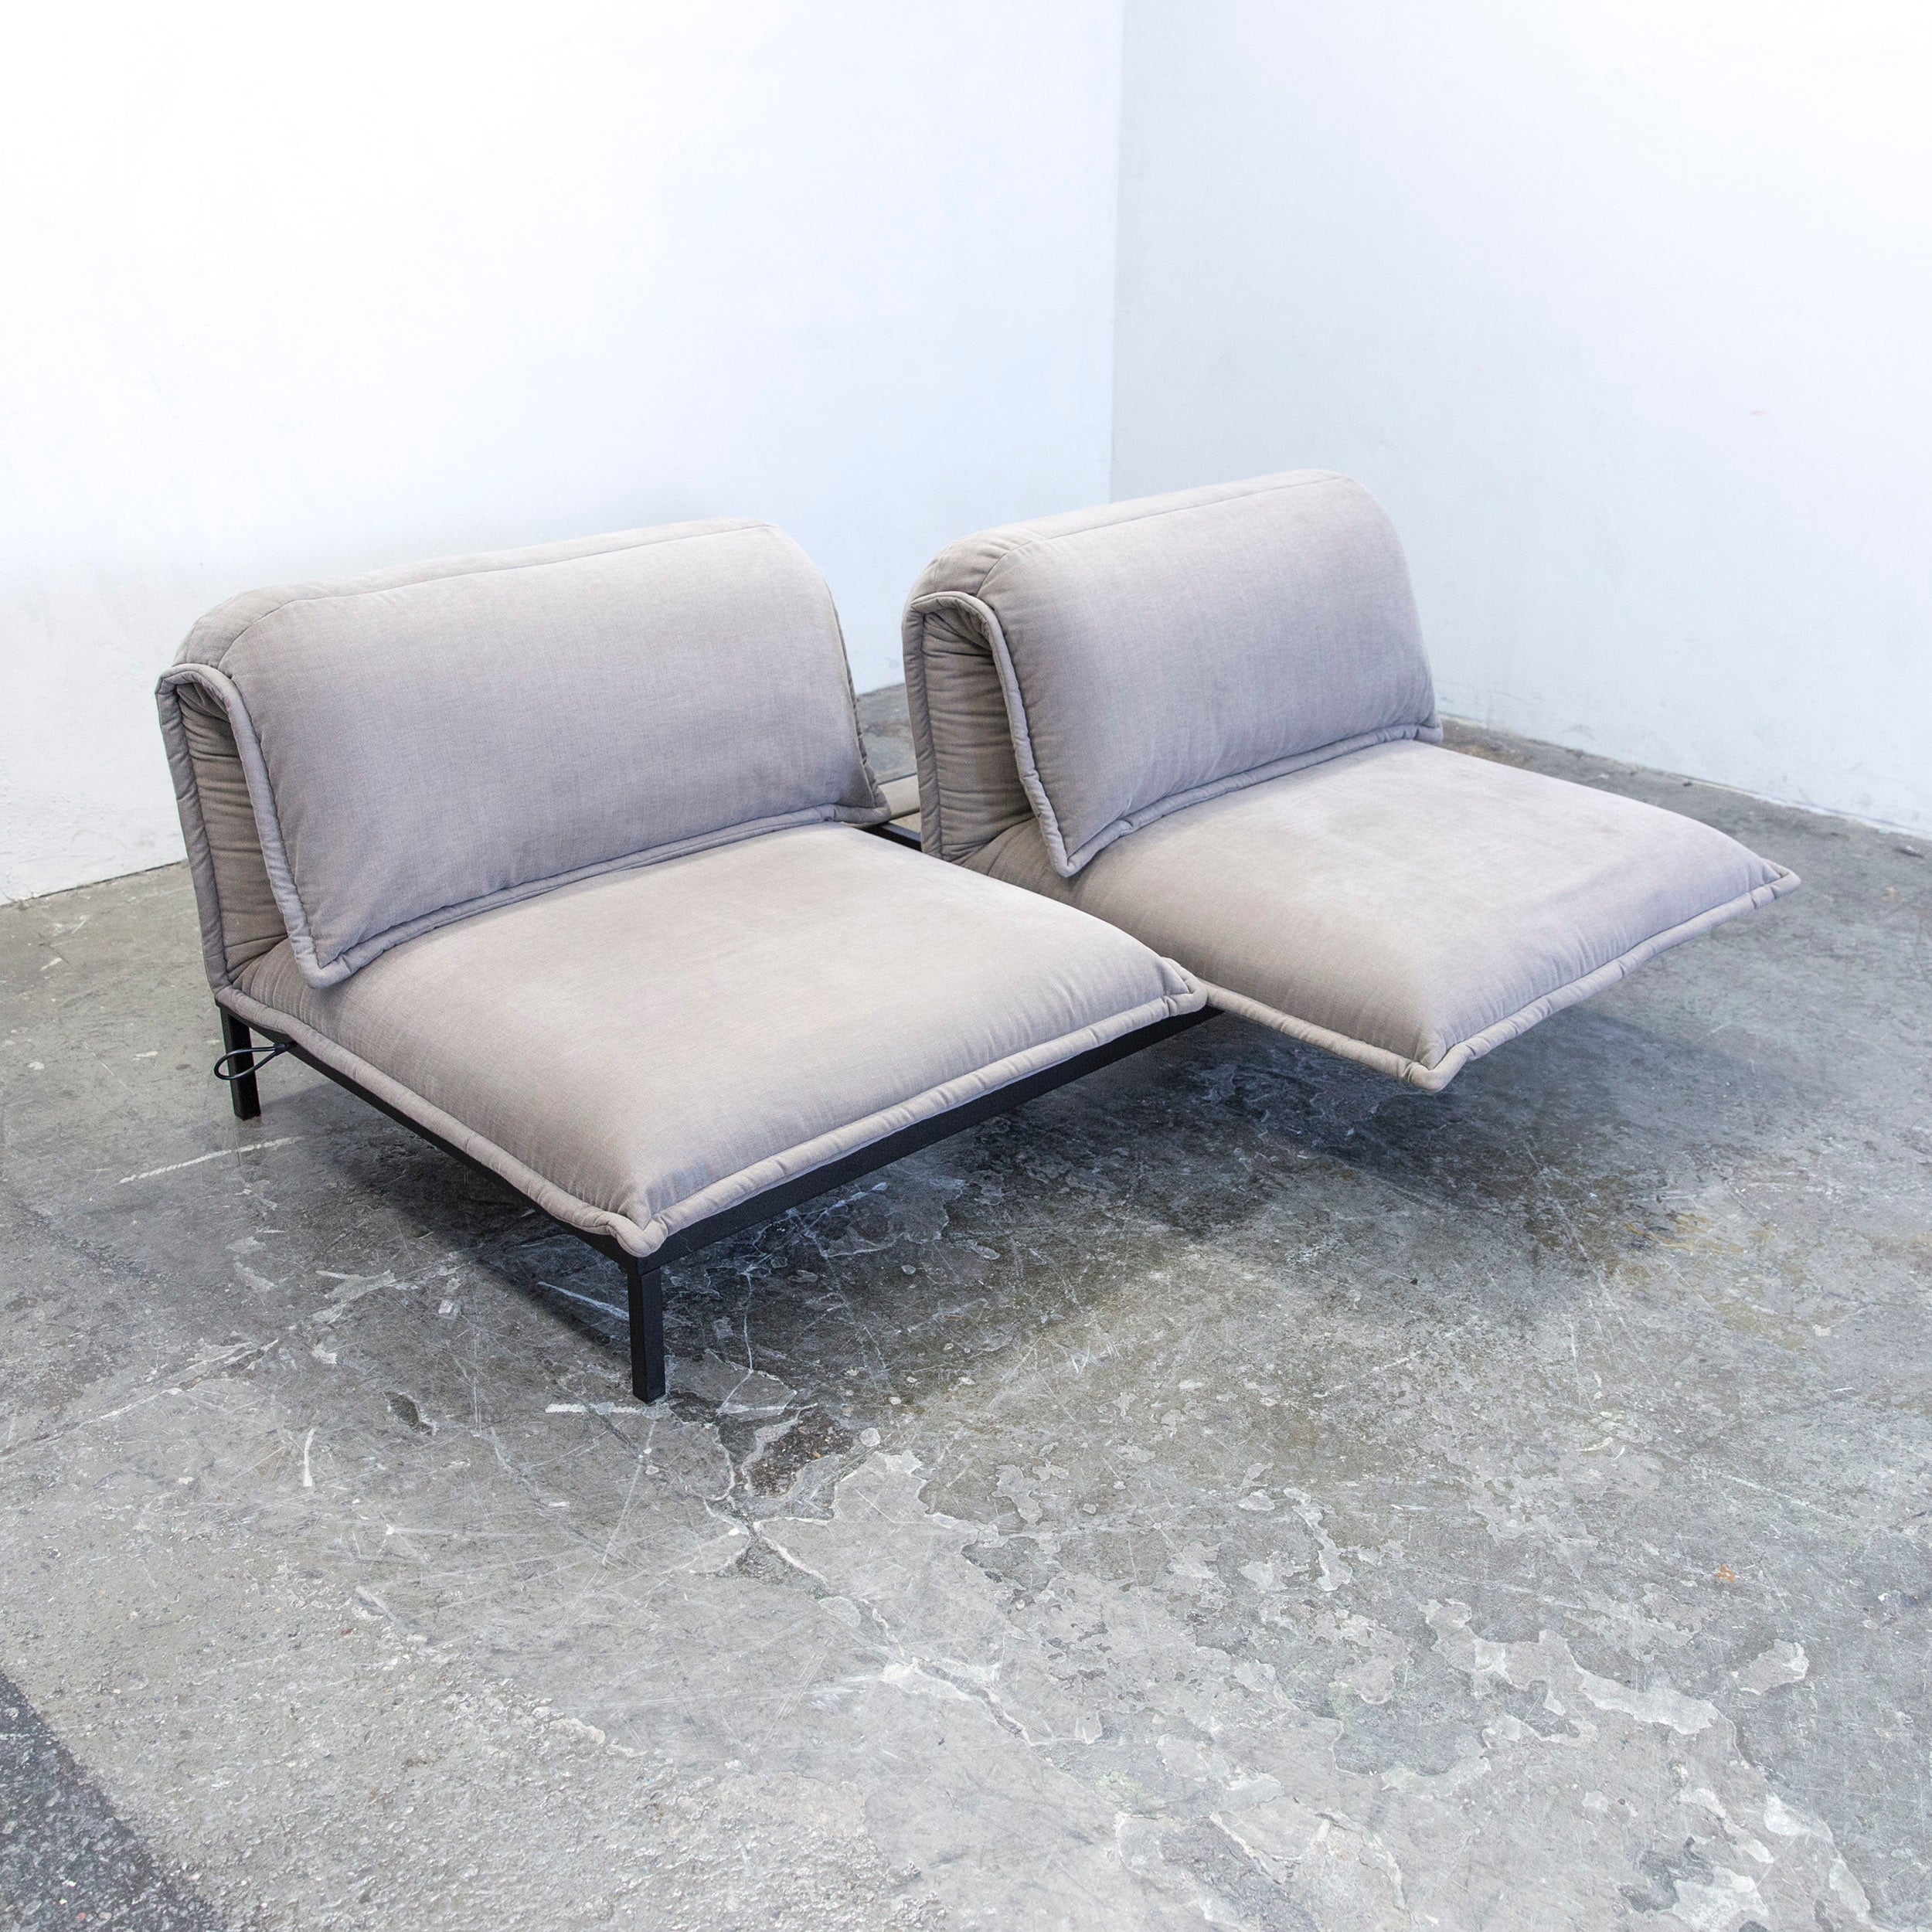 Rolf Benz Sofa Stoff Beige Rolf Benz Nova Designer Sofa Grey Fabric Two Seat Function Couch Modern